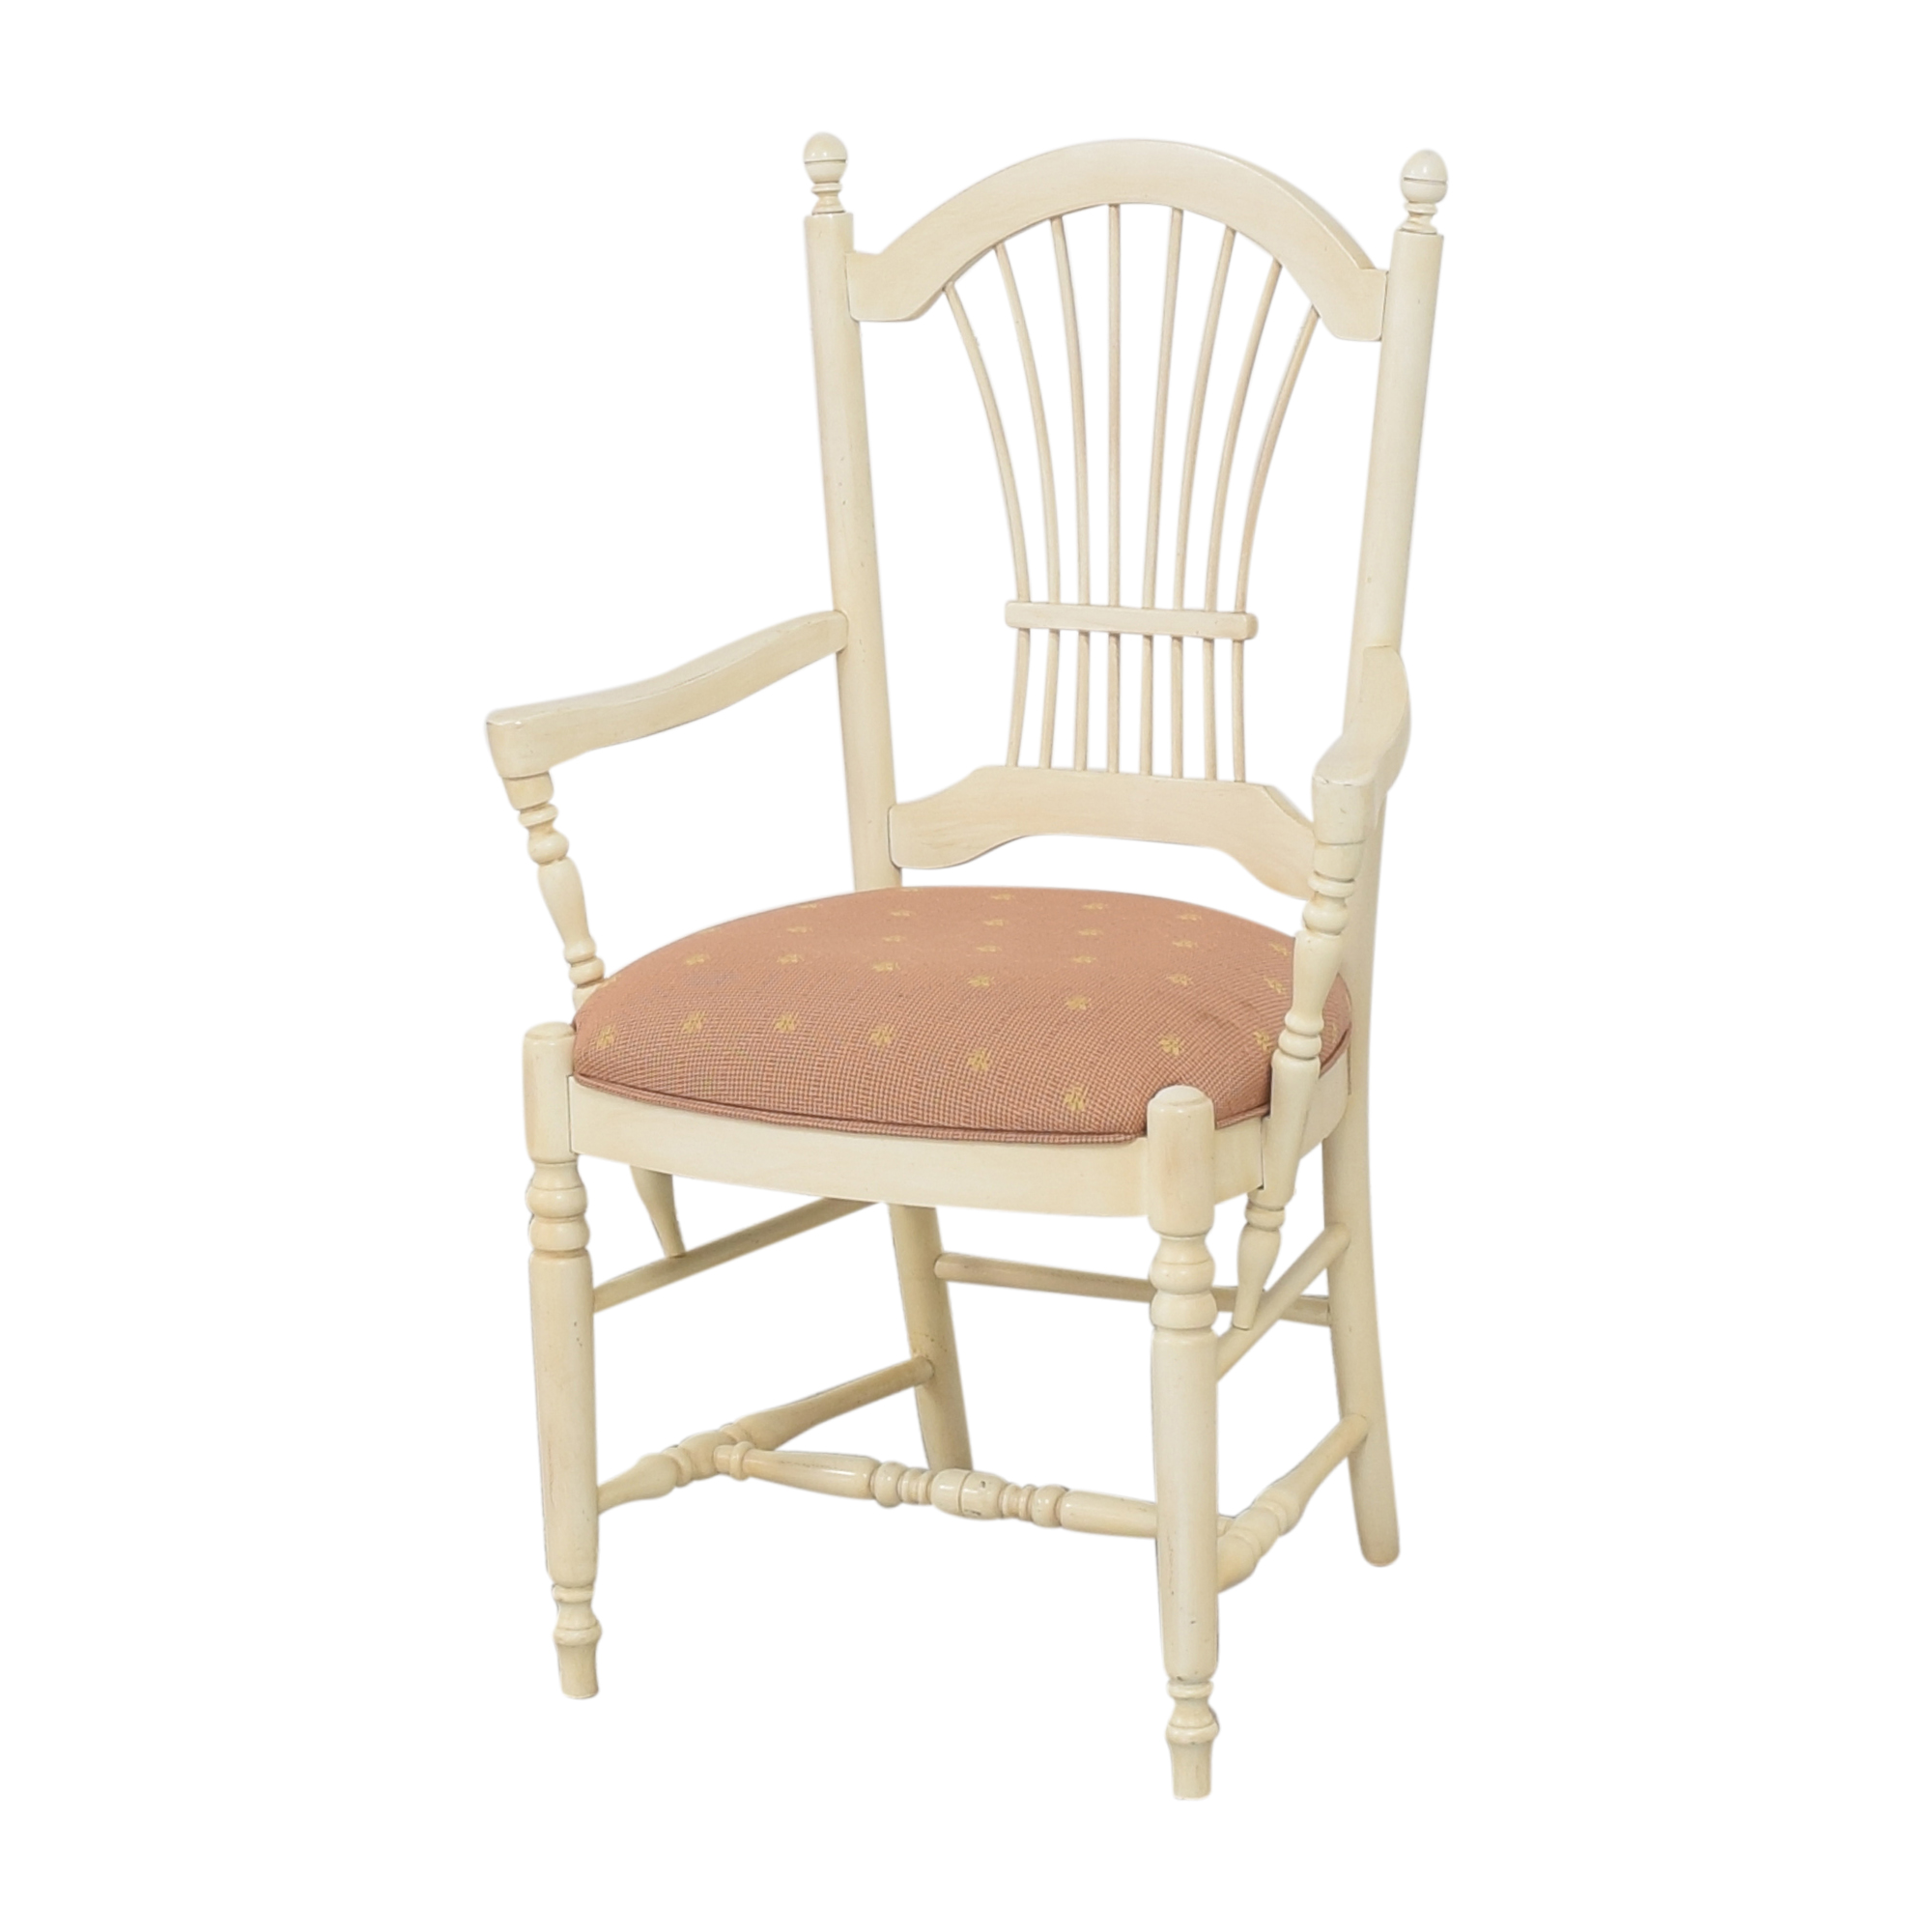 Ethan Allen Ethan Allen Country French Dining Arm Chairs on sale